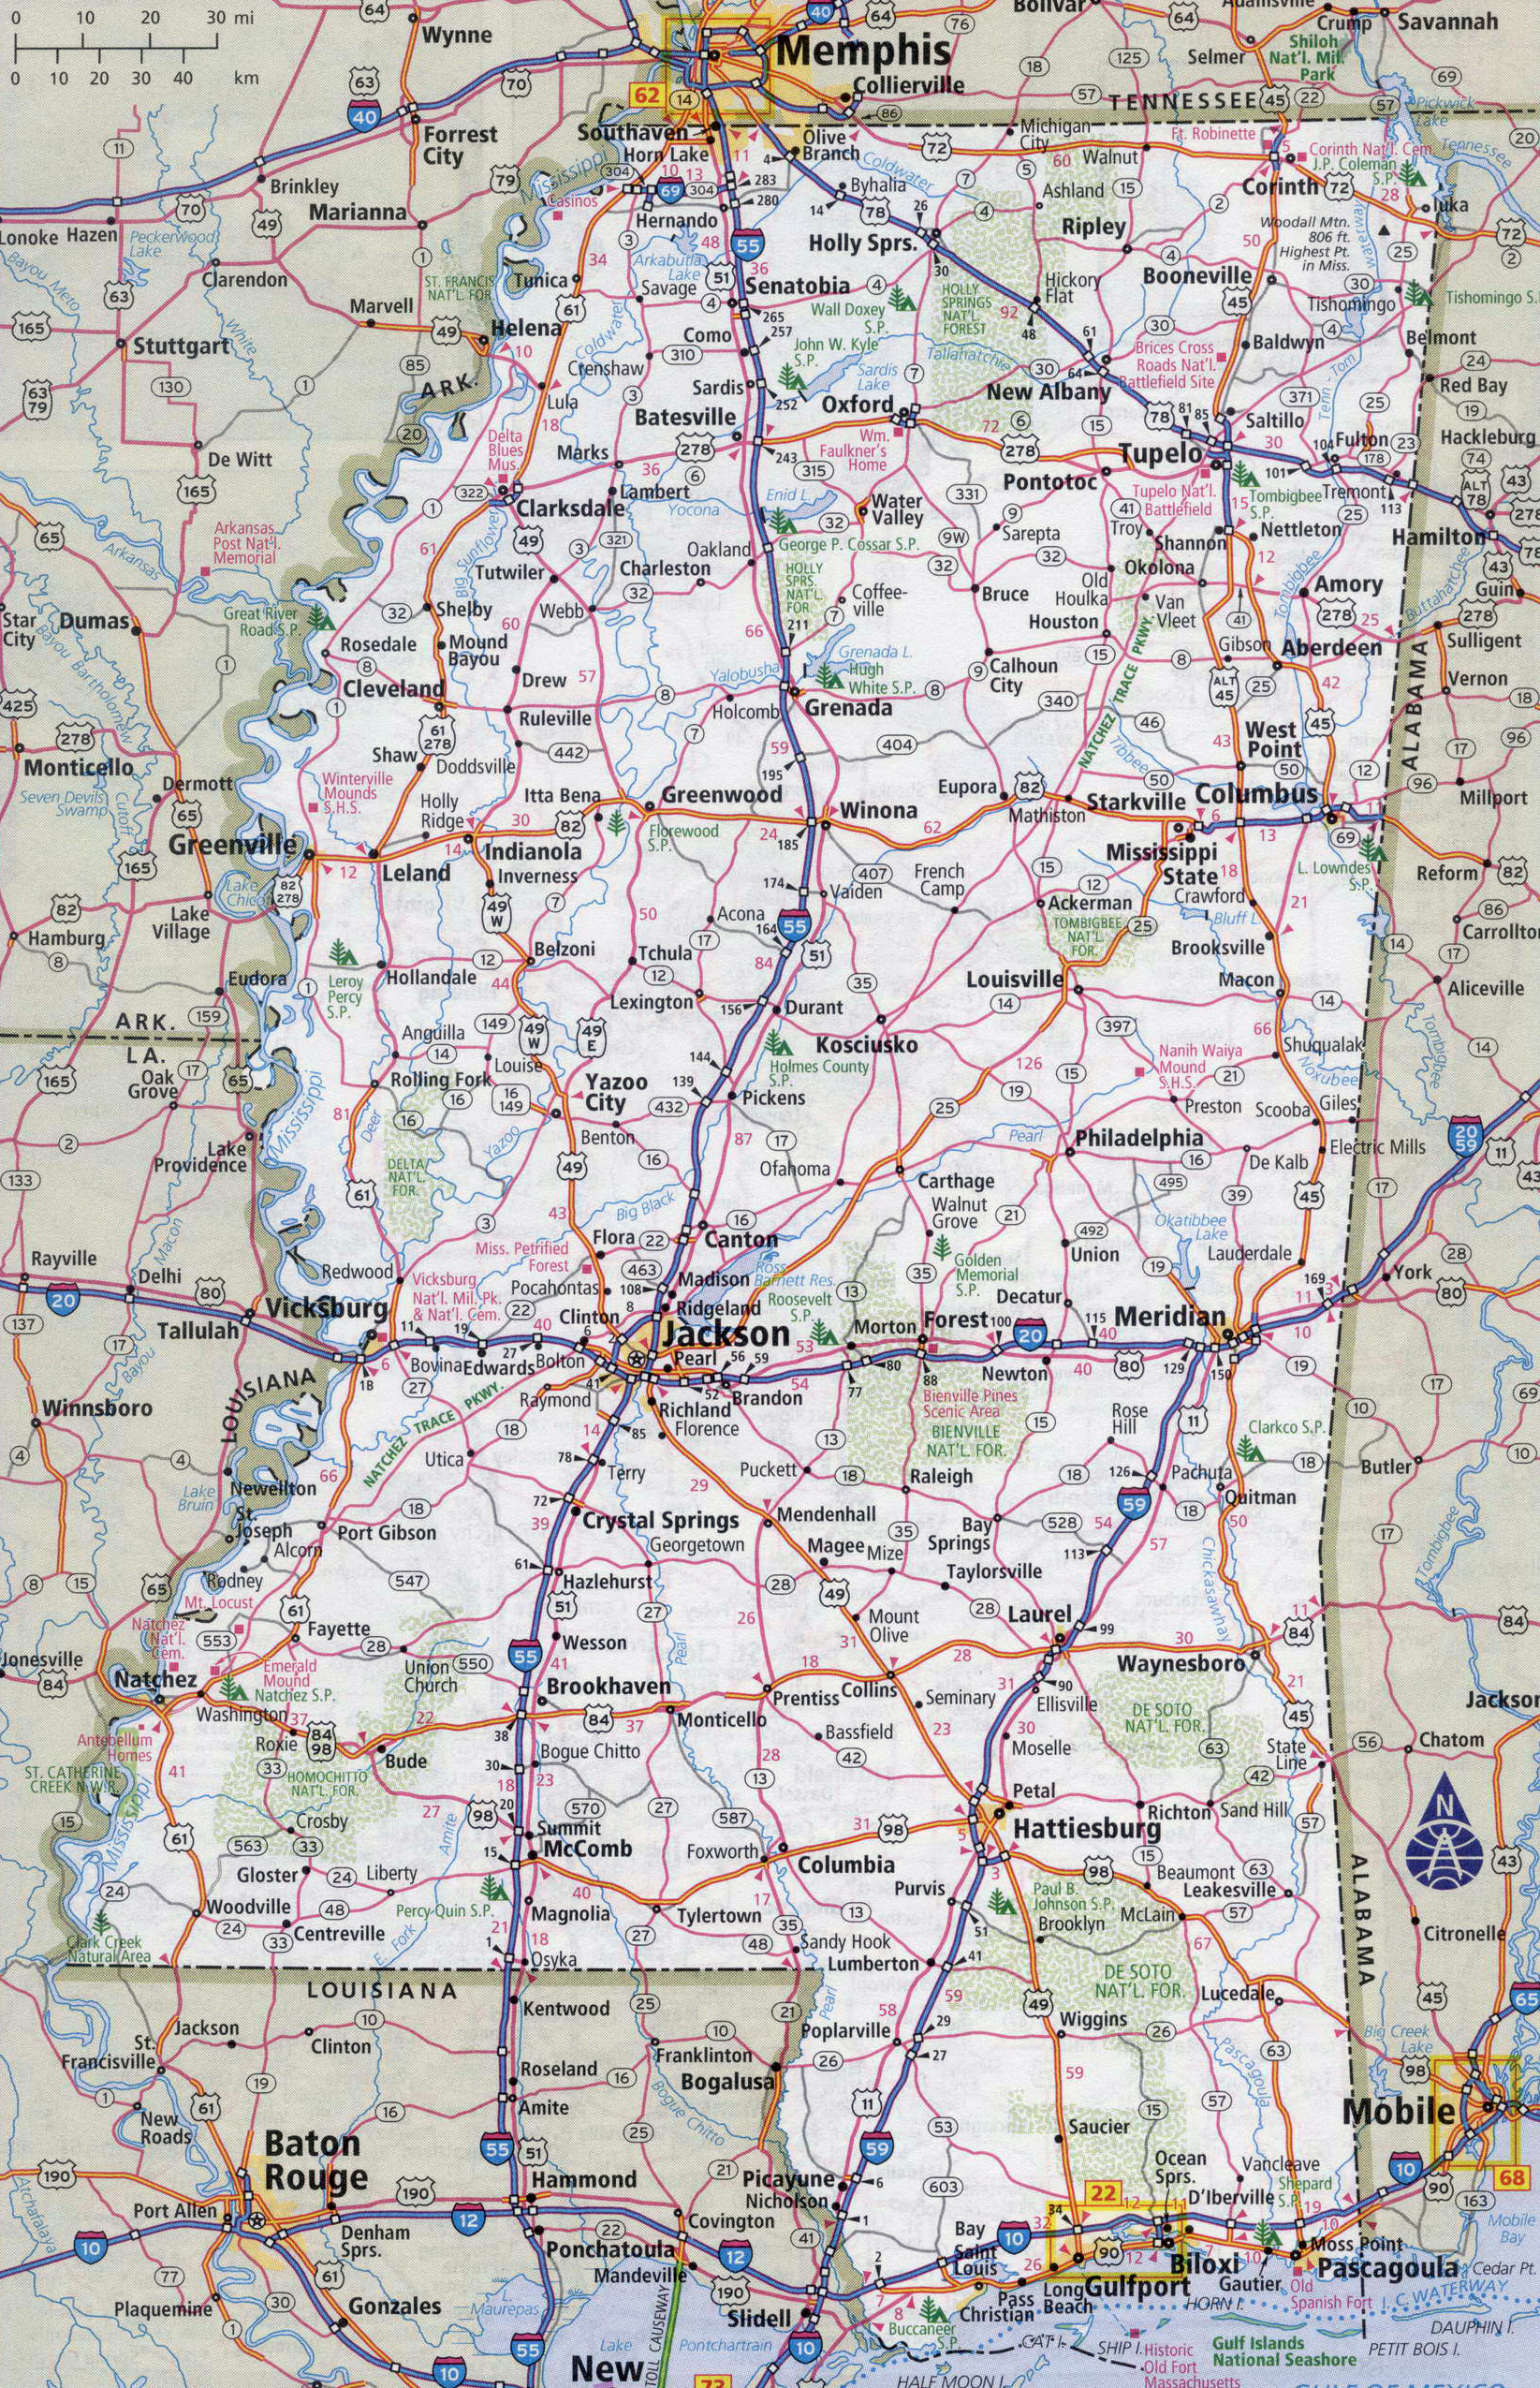 large detailed roads and highways map of mississippi state with cities. large detailed roads and highways map of mississippi state with